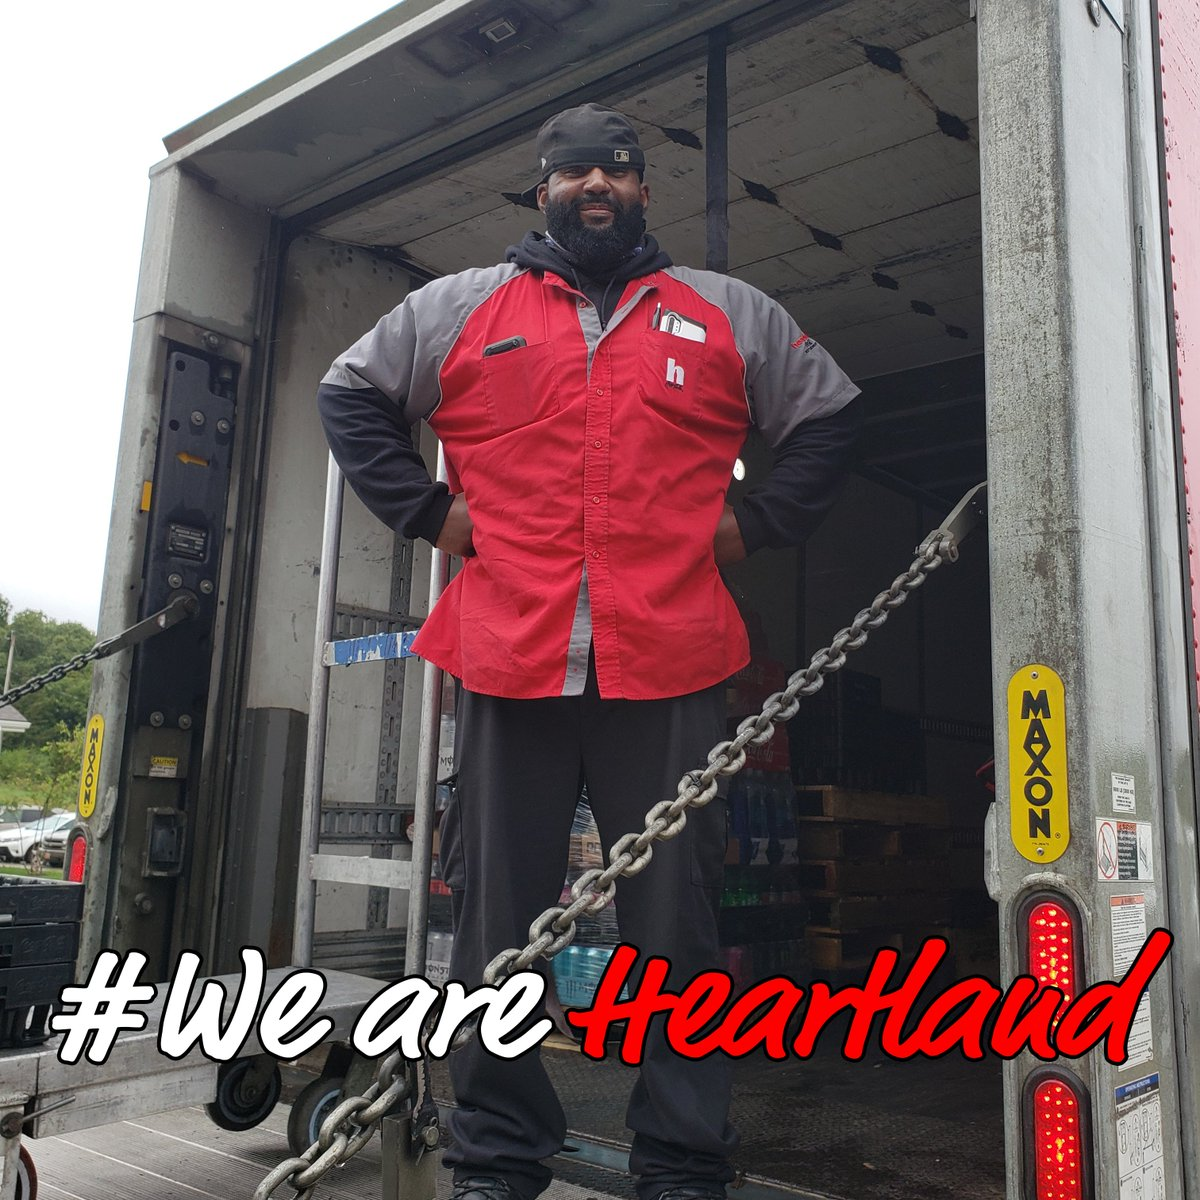 There is nobody we rather journey into 2021 with besides our tremendous employees at Heartland. #weareHeartland